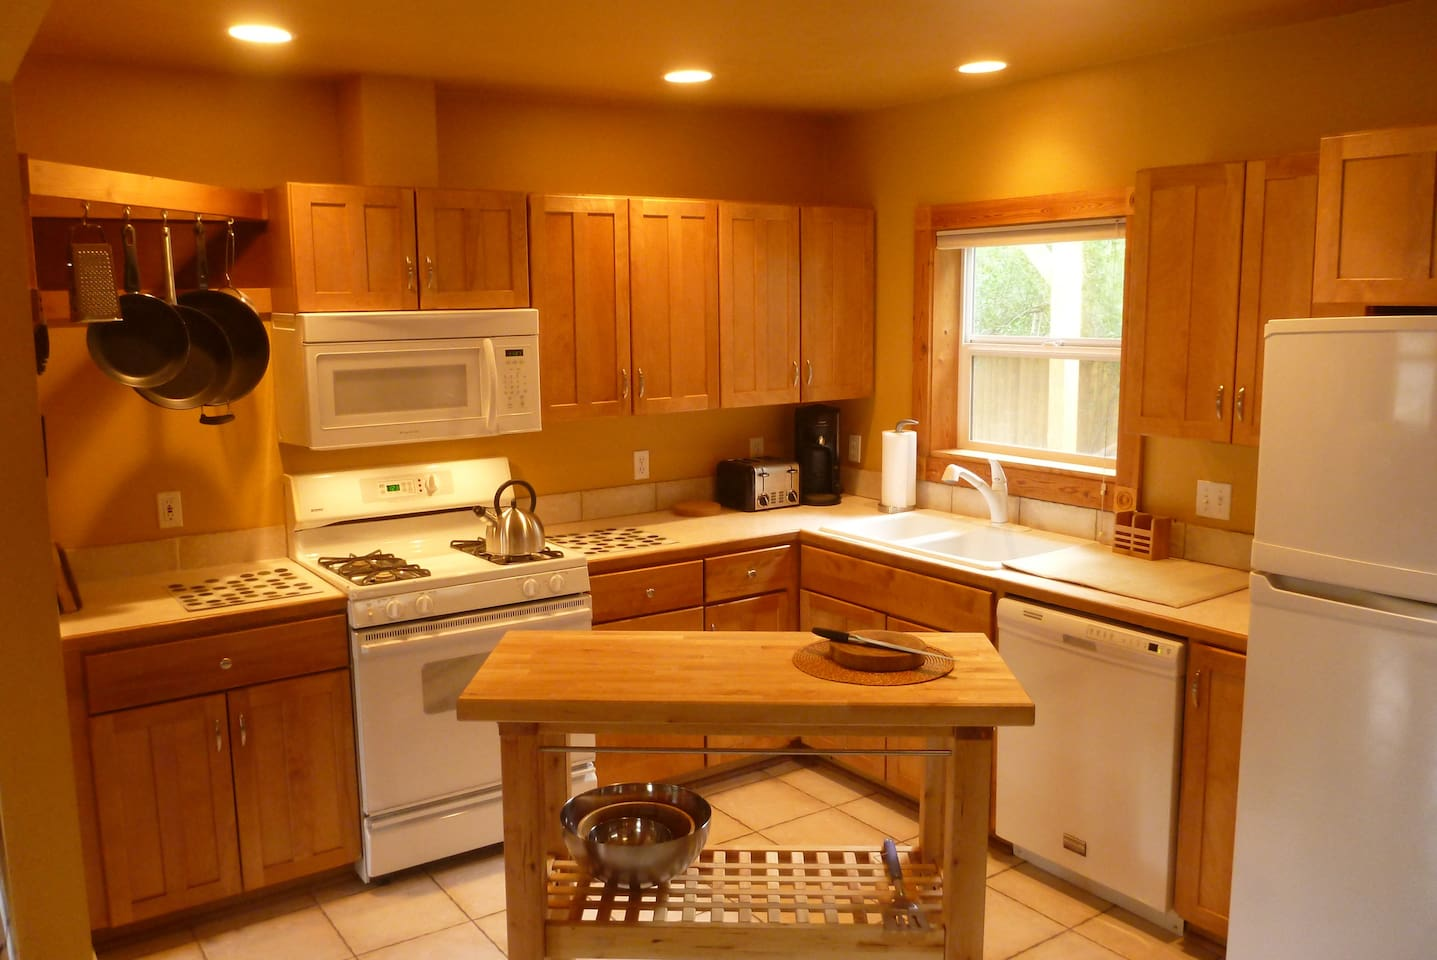 Gas cook stove and lots of kitchen tools for your cooking needs